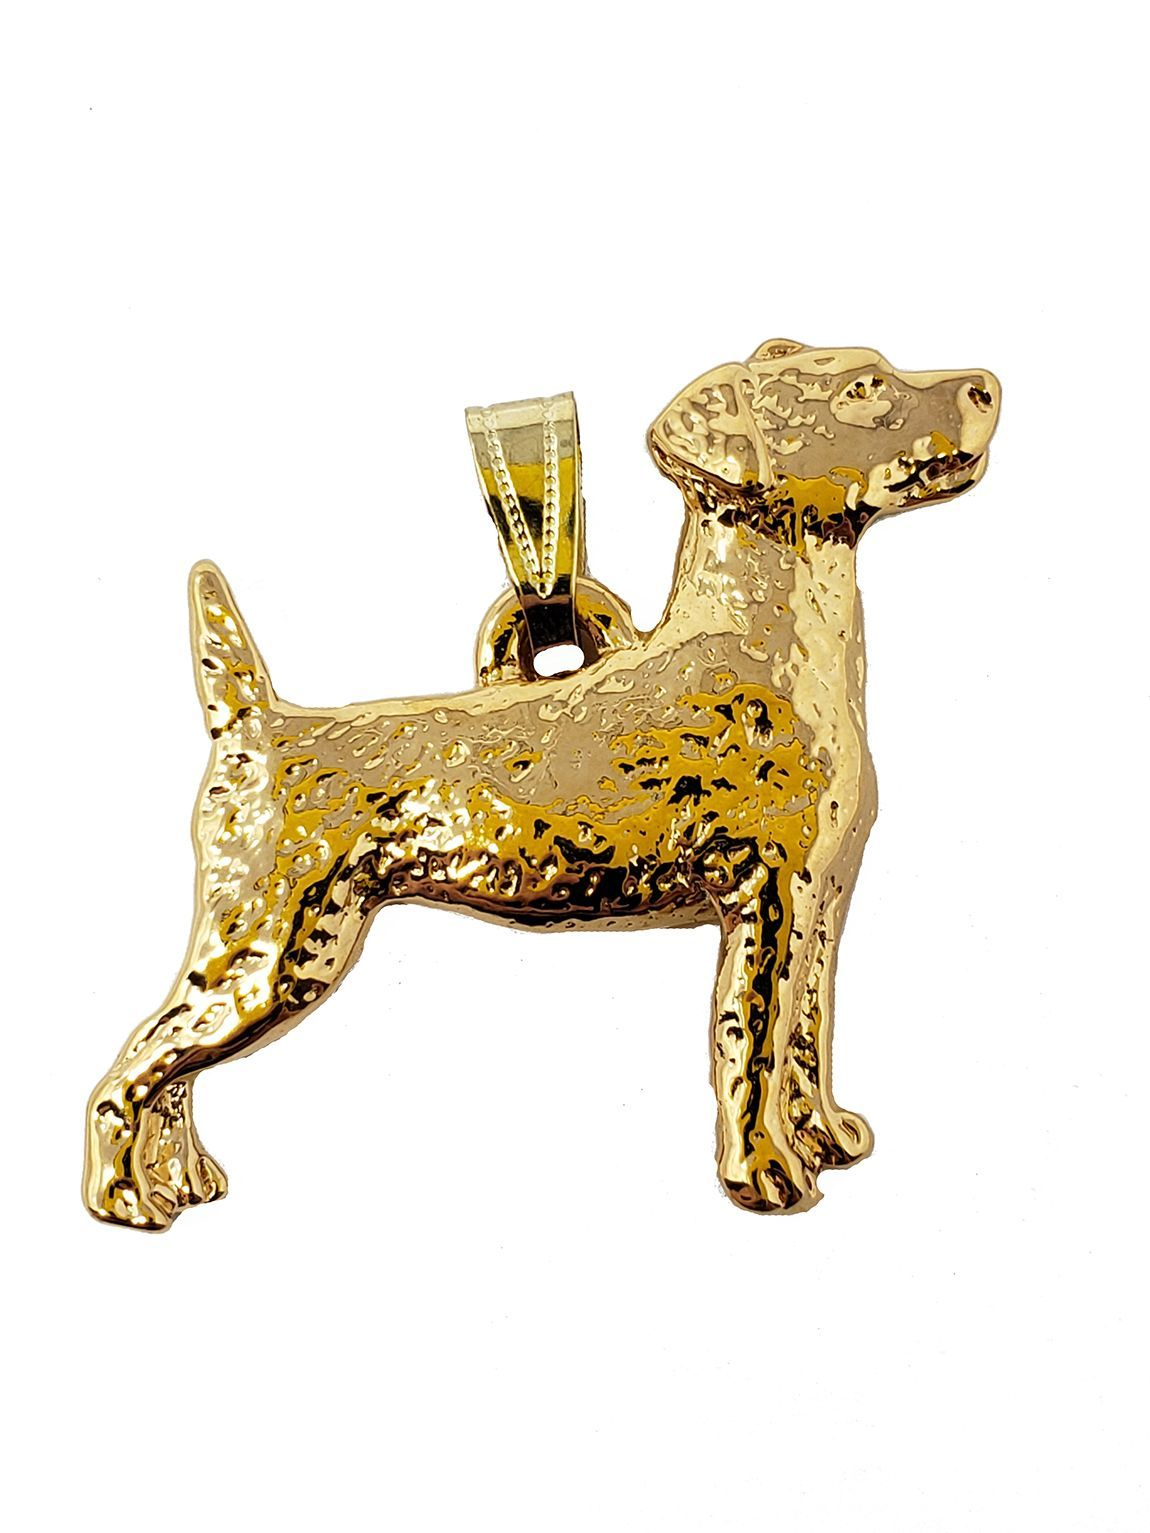 Jack Russell Terrier 24K Gold Plated Pendant